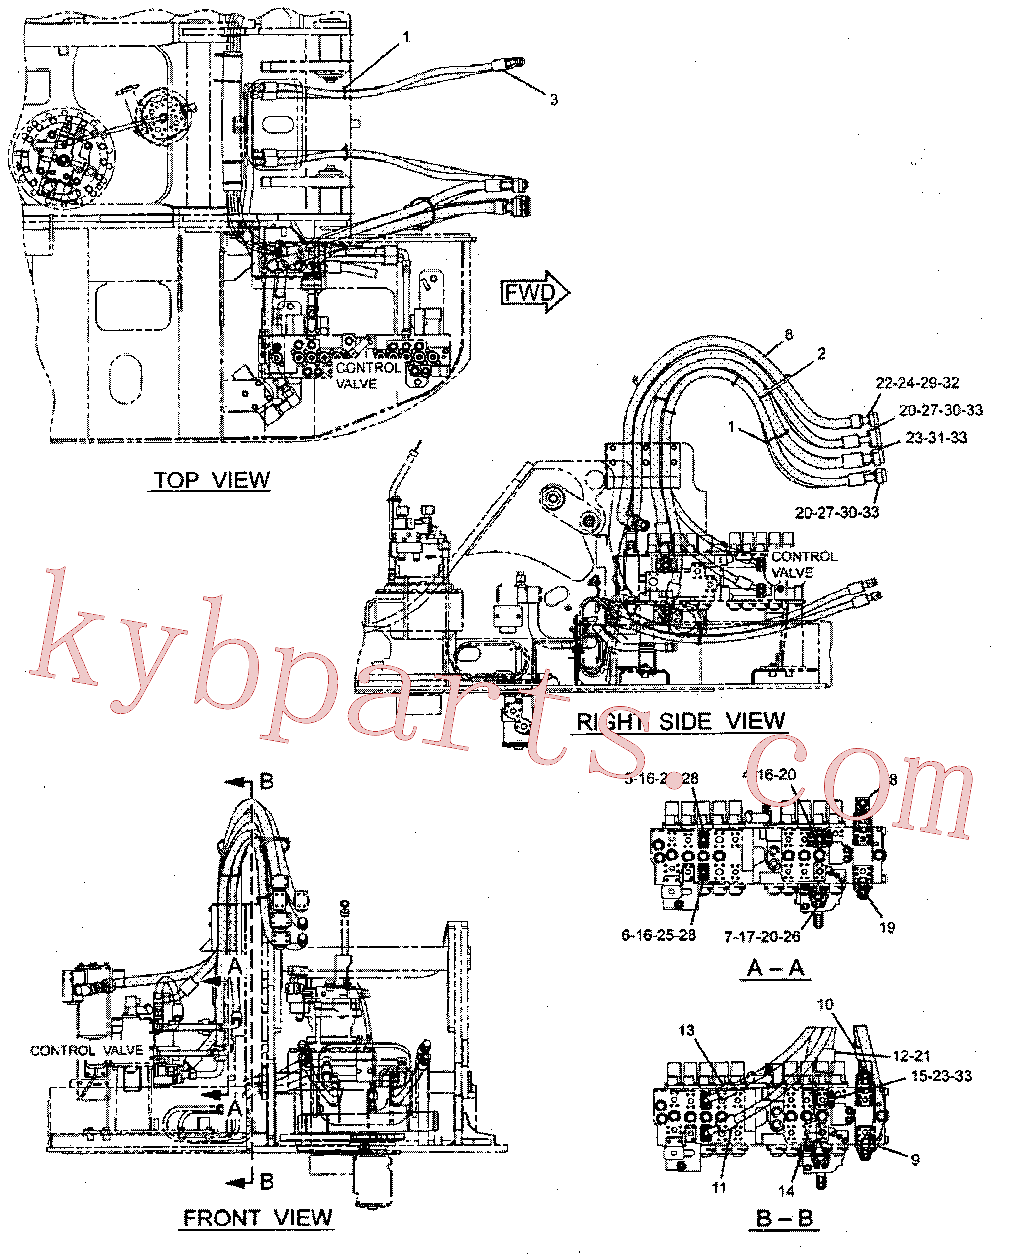 CAT 282-5868 for 328D LCR Excavator(EXC) hydraulic system 277-0867 Assembly